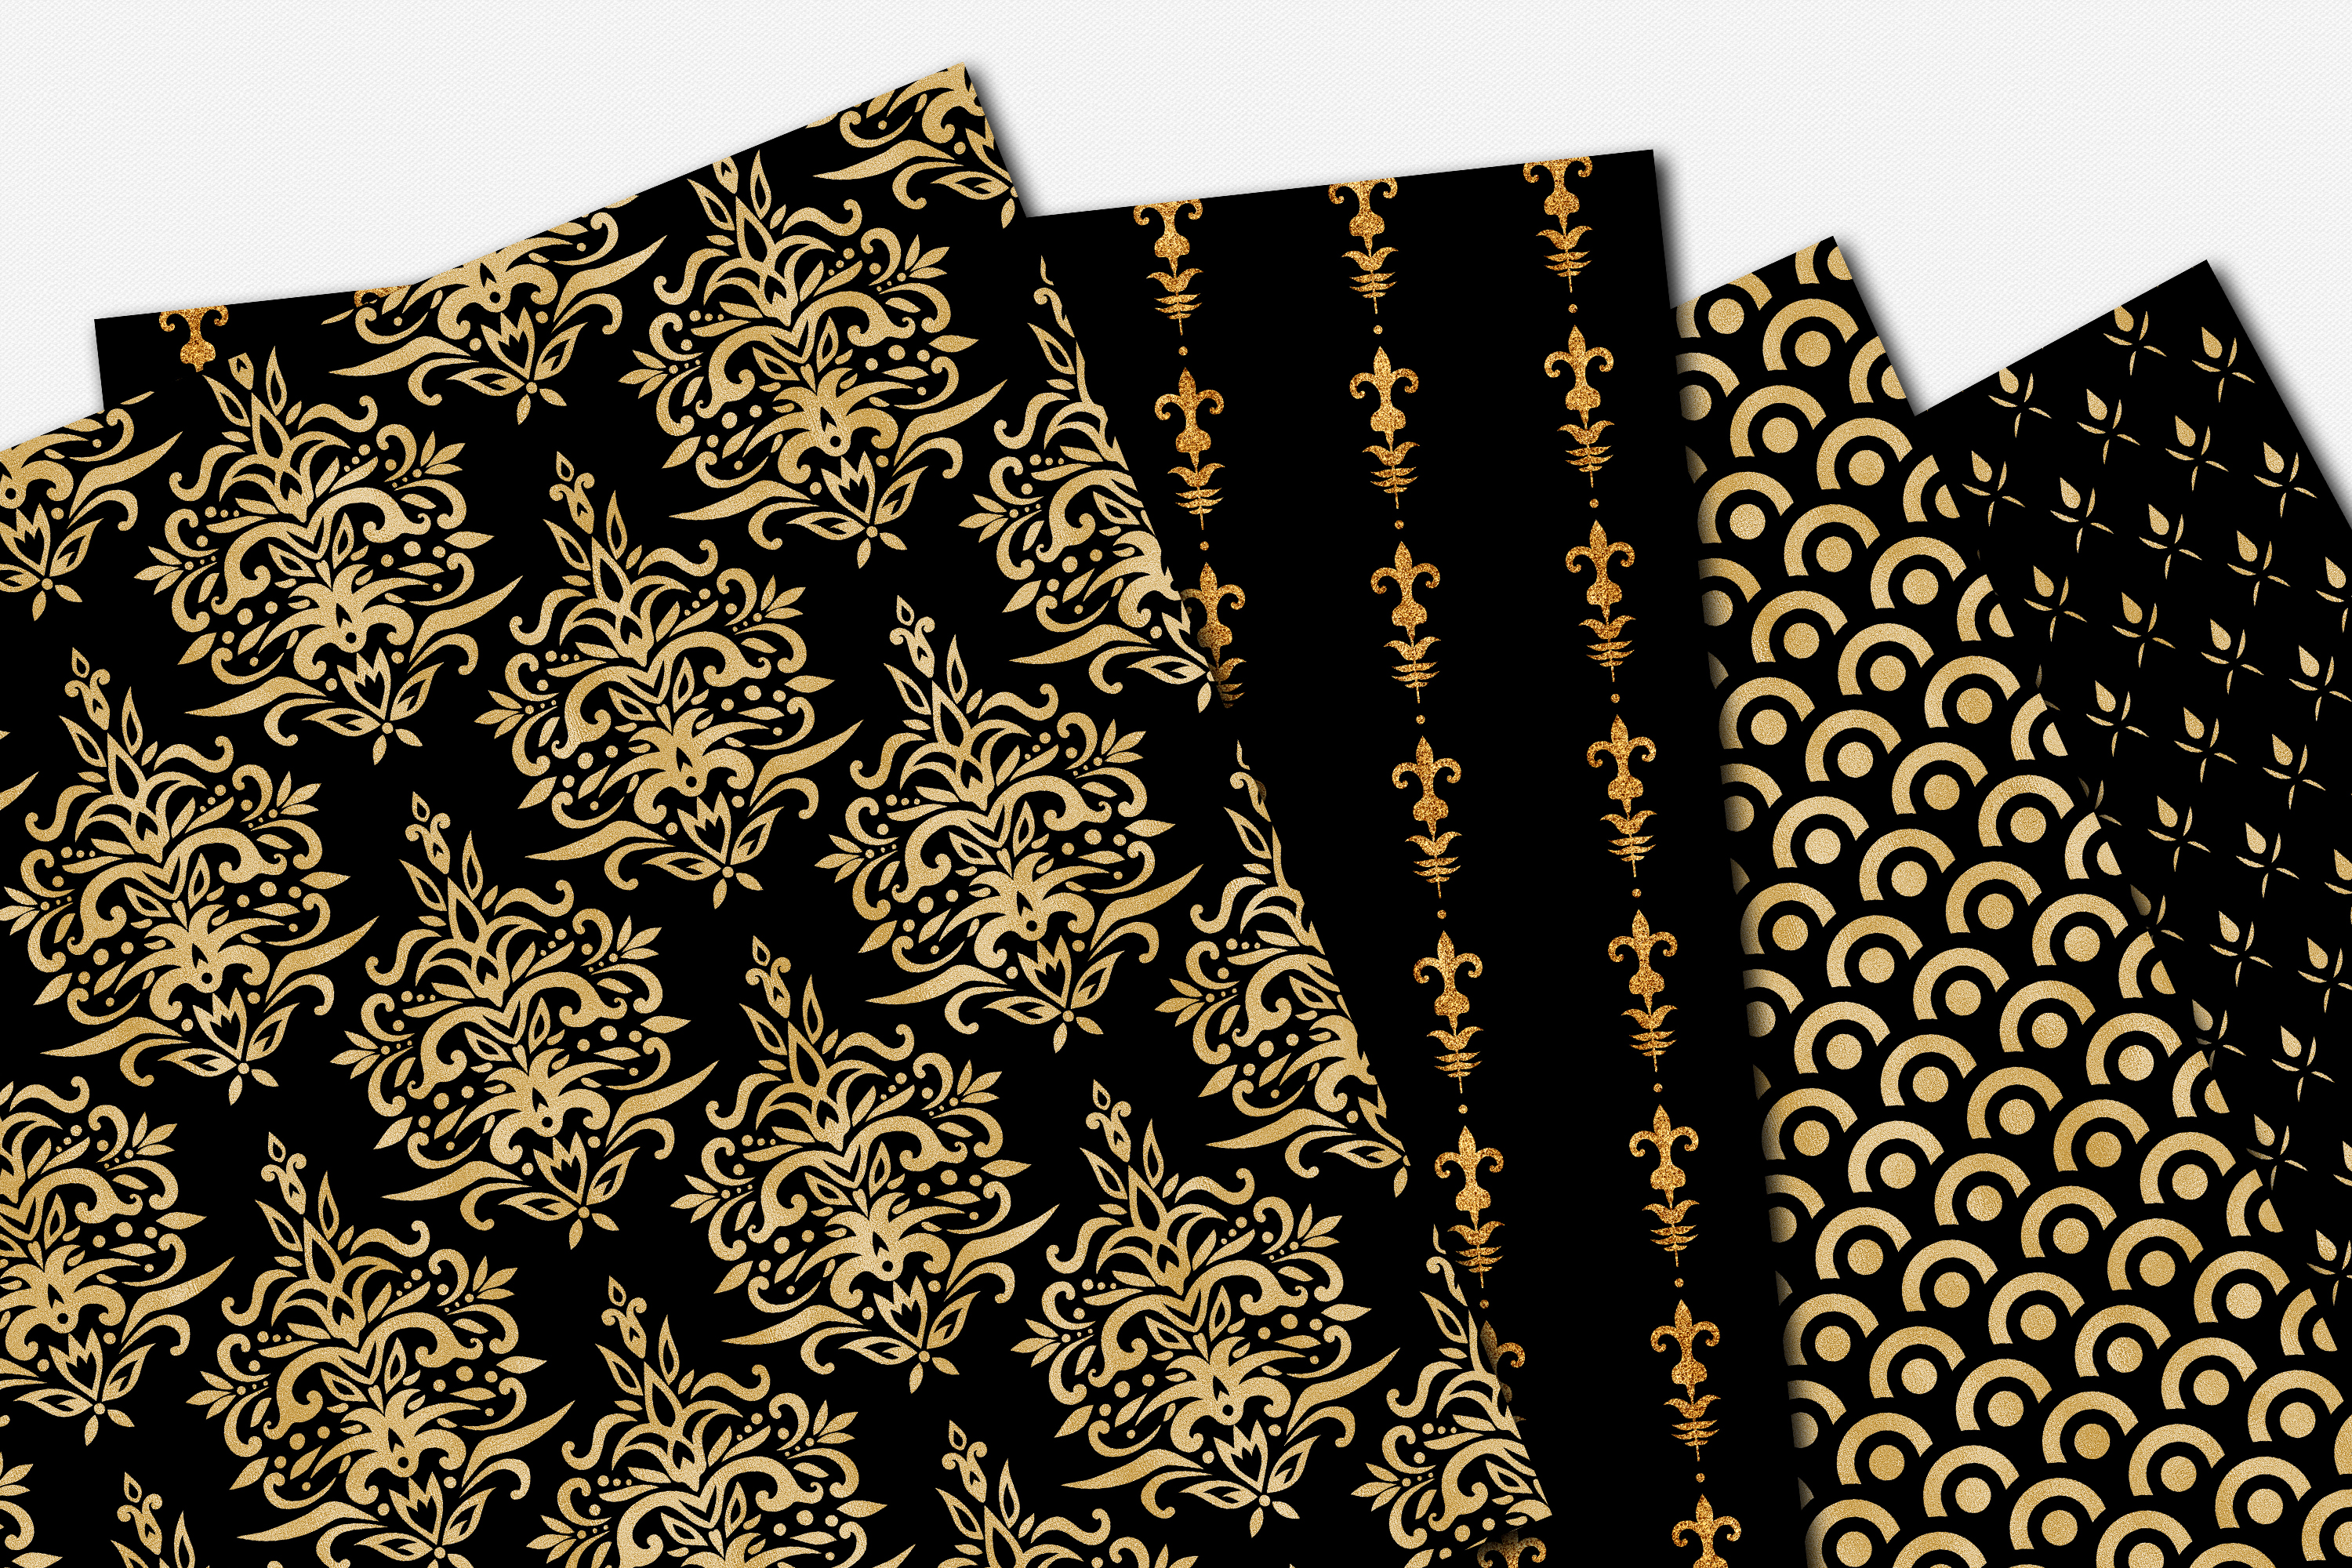 Black and Gold Seamless Papers - Damask & Geometric Patterns example image 5